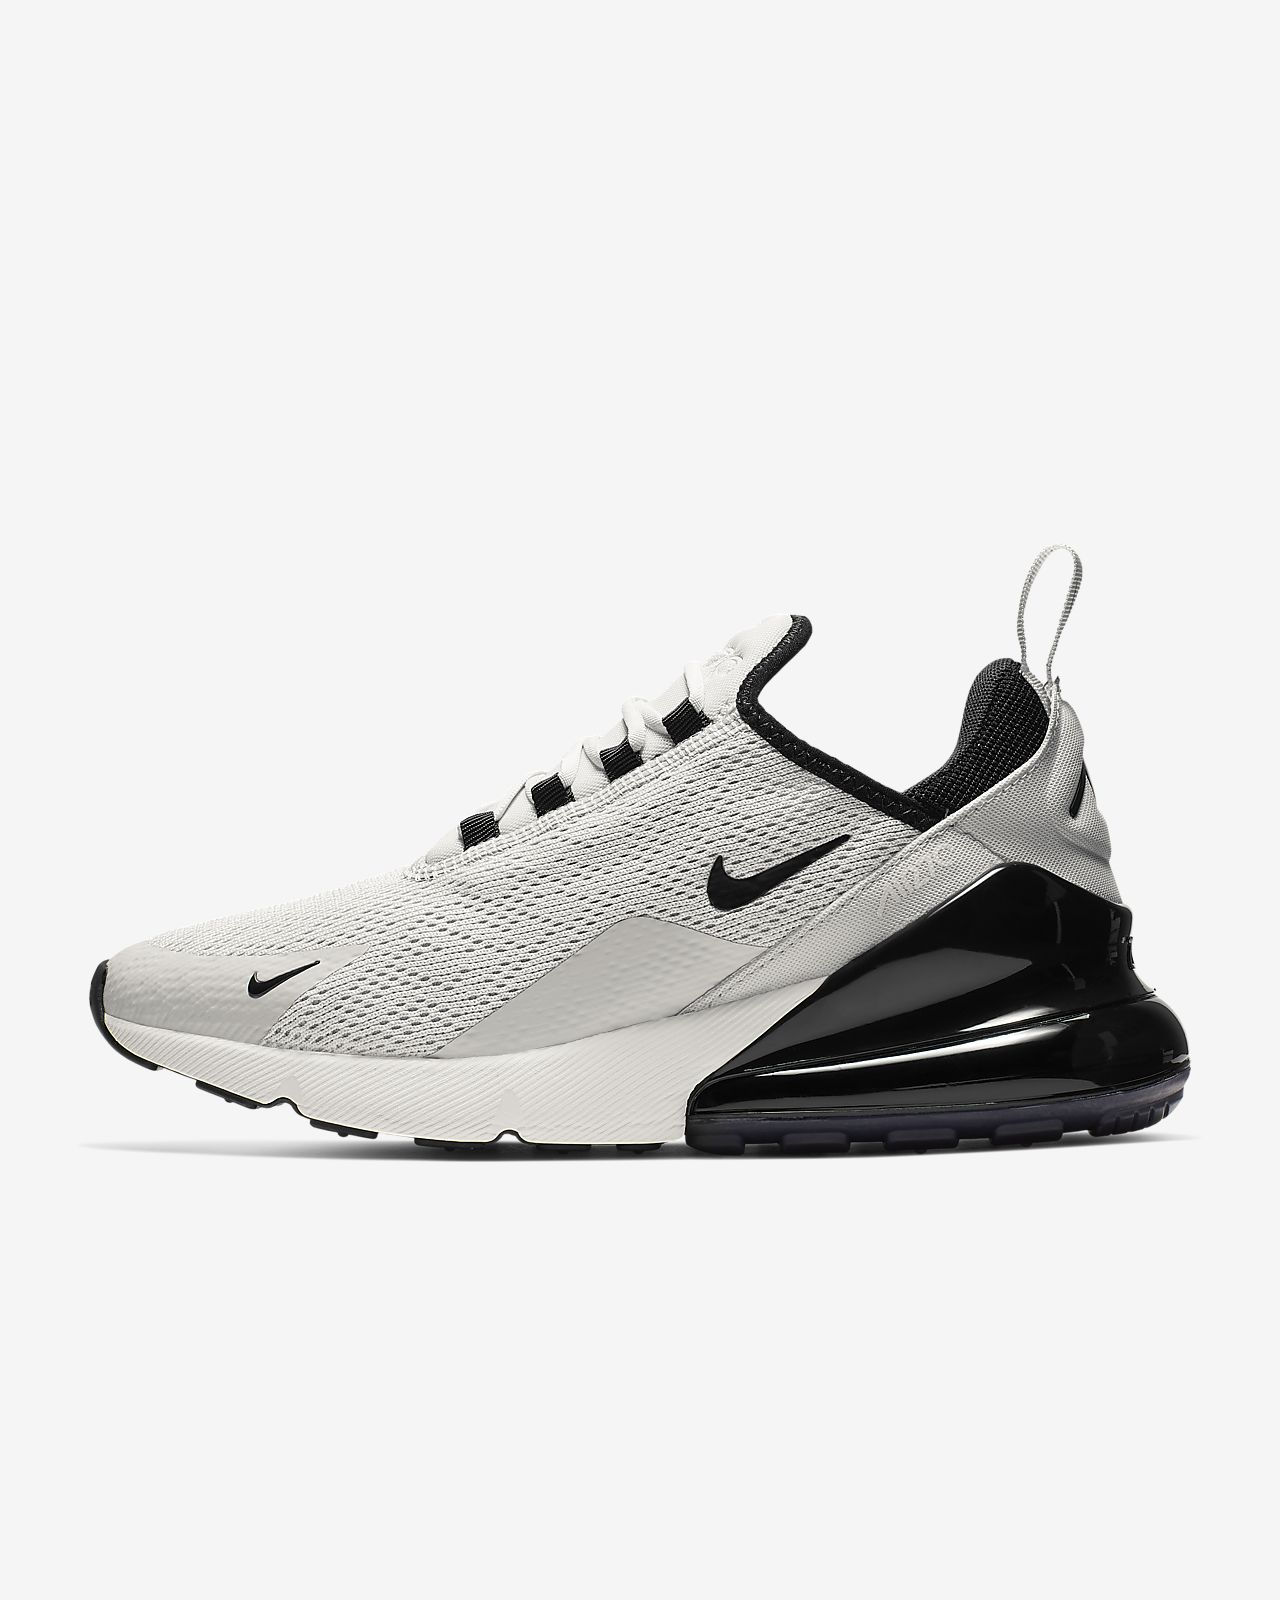 innovative design cd357 eec5d ... Chaussure Nike Air Max 270 pour Femme